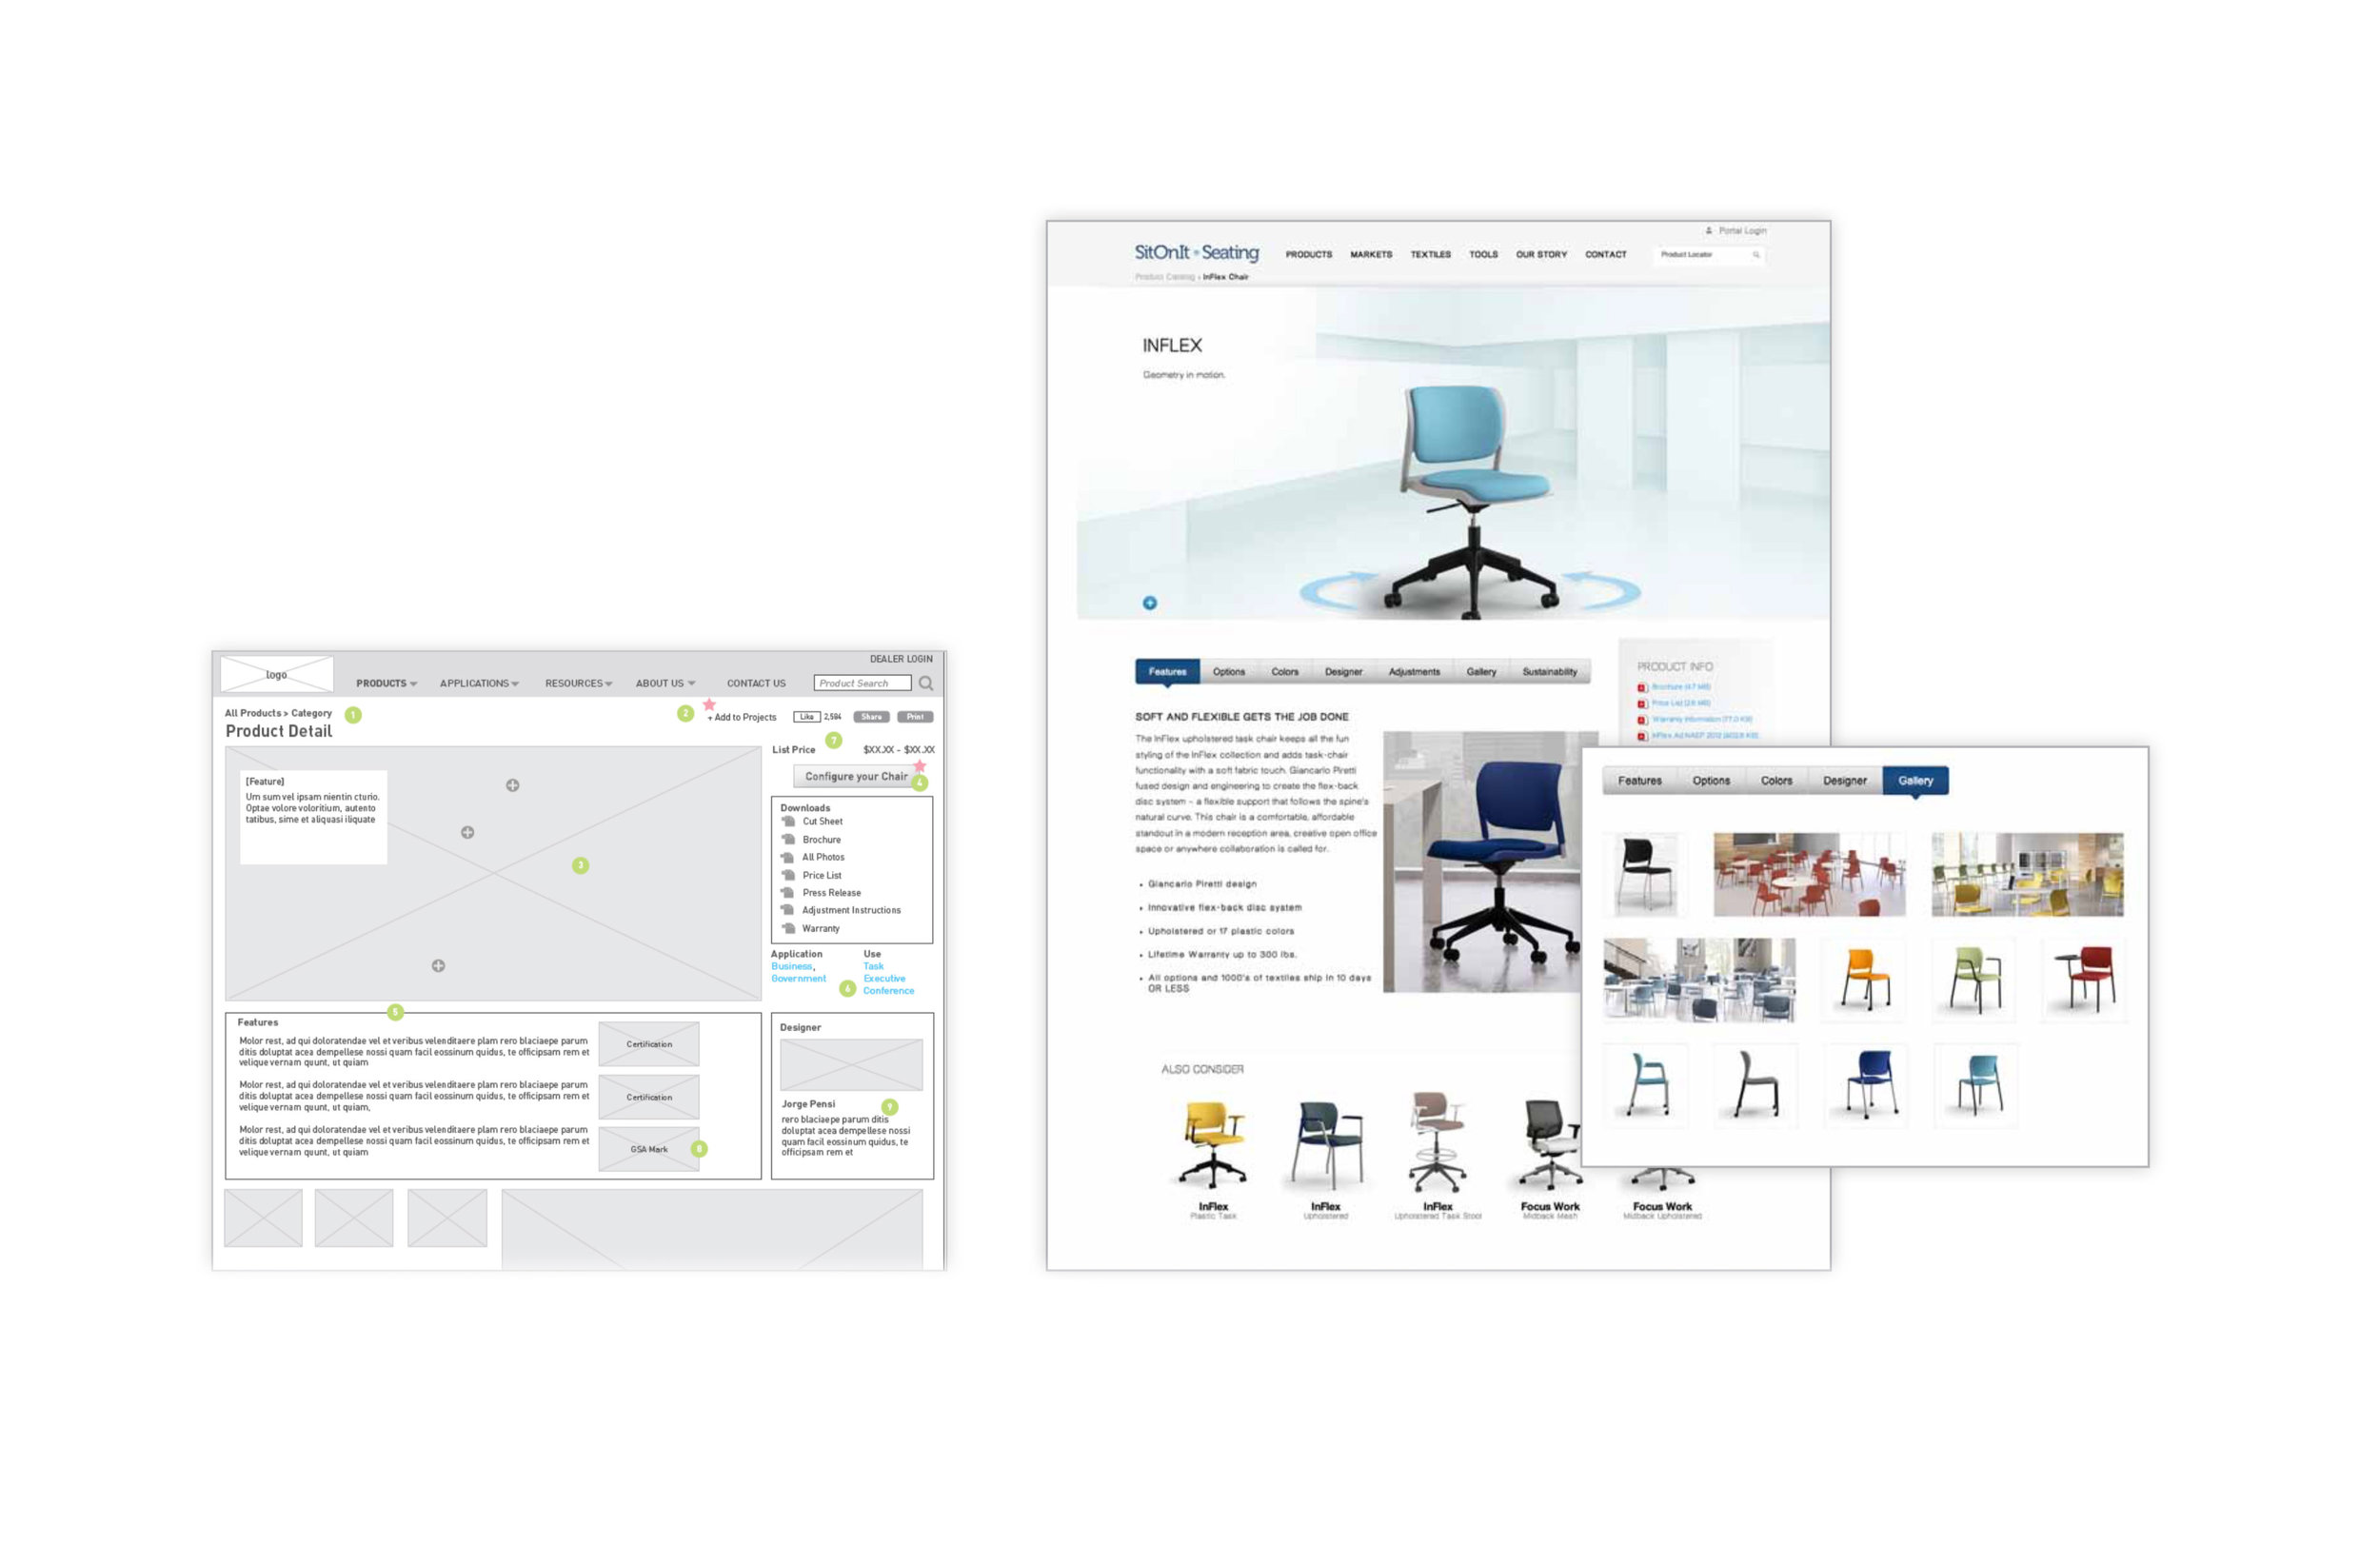 Content Rich - The previous product page lacked the nesesary details to help users make a purchase decision. With the new design features and specs were added in an easy-to-navigate interface as well as a 360-degree view of the product. Large clear imagery was was used to shocase products in an enviroment.